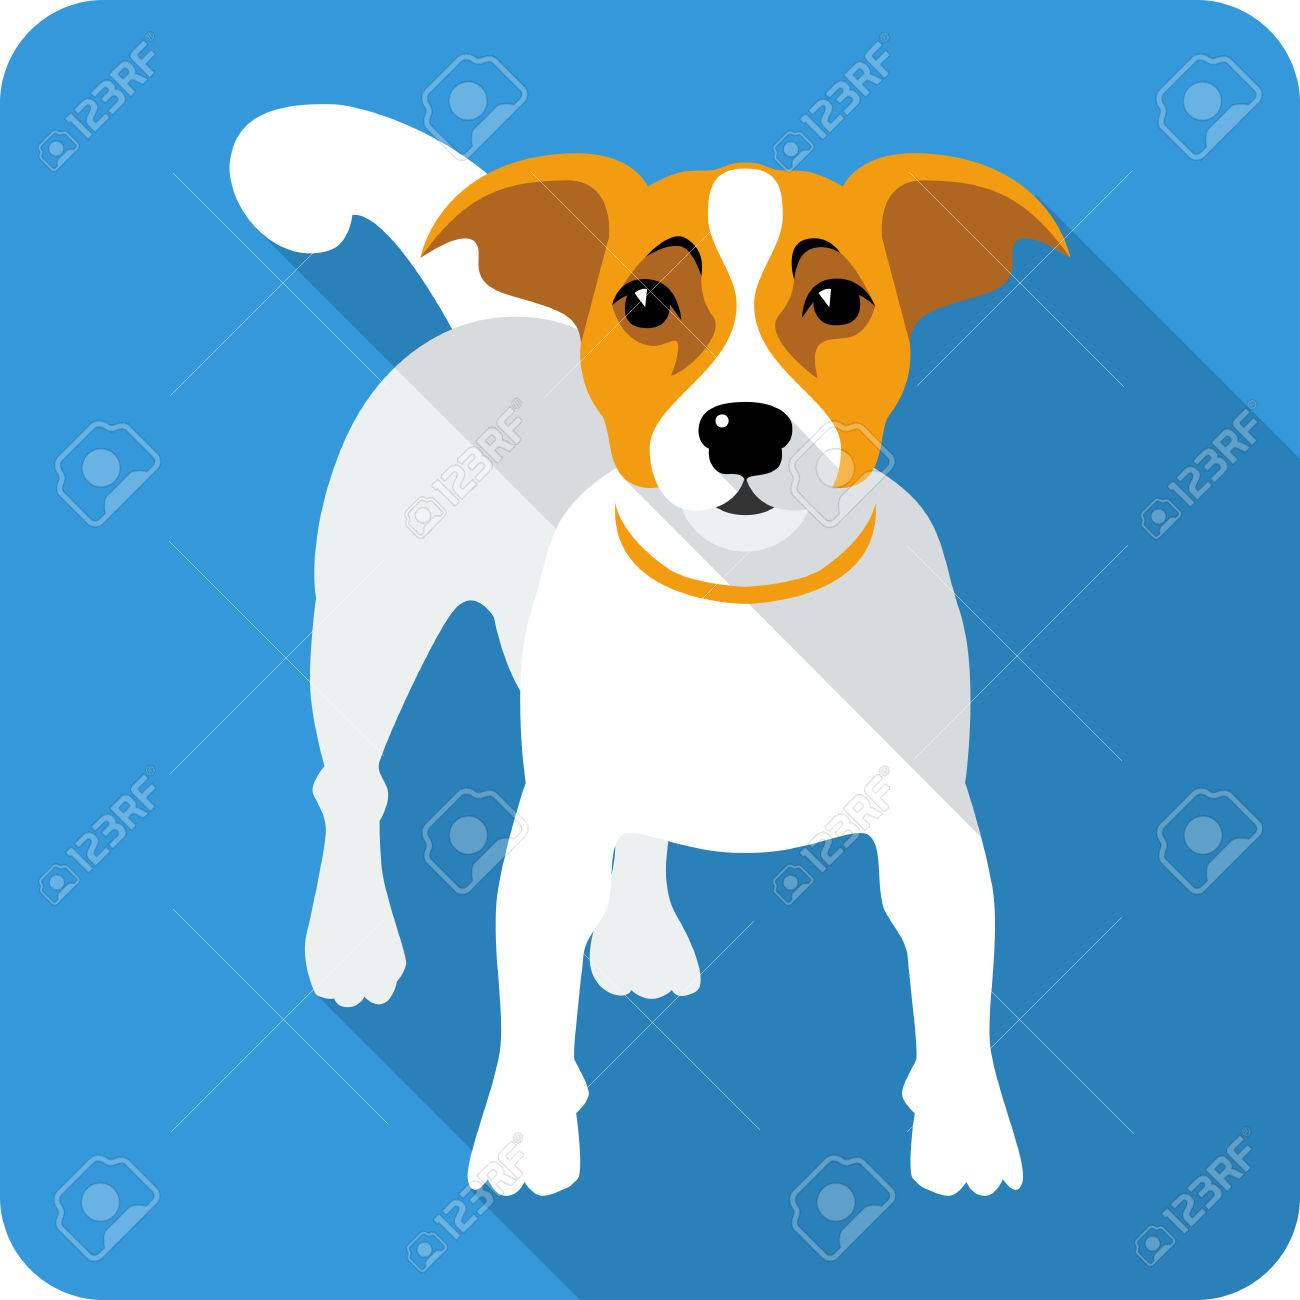 Dog Jack Russell Terrier Icon Flat Design Royalty Free Cliparts ...